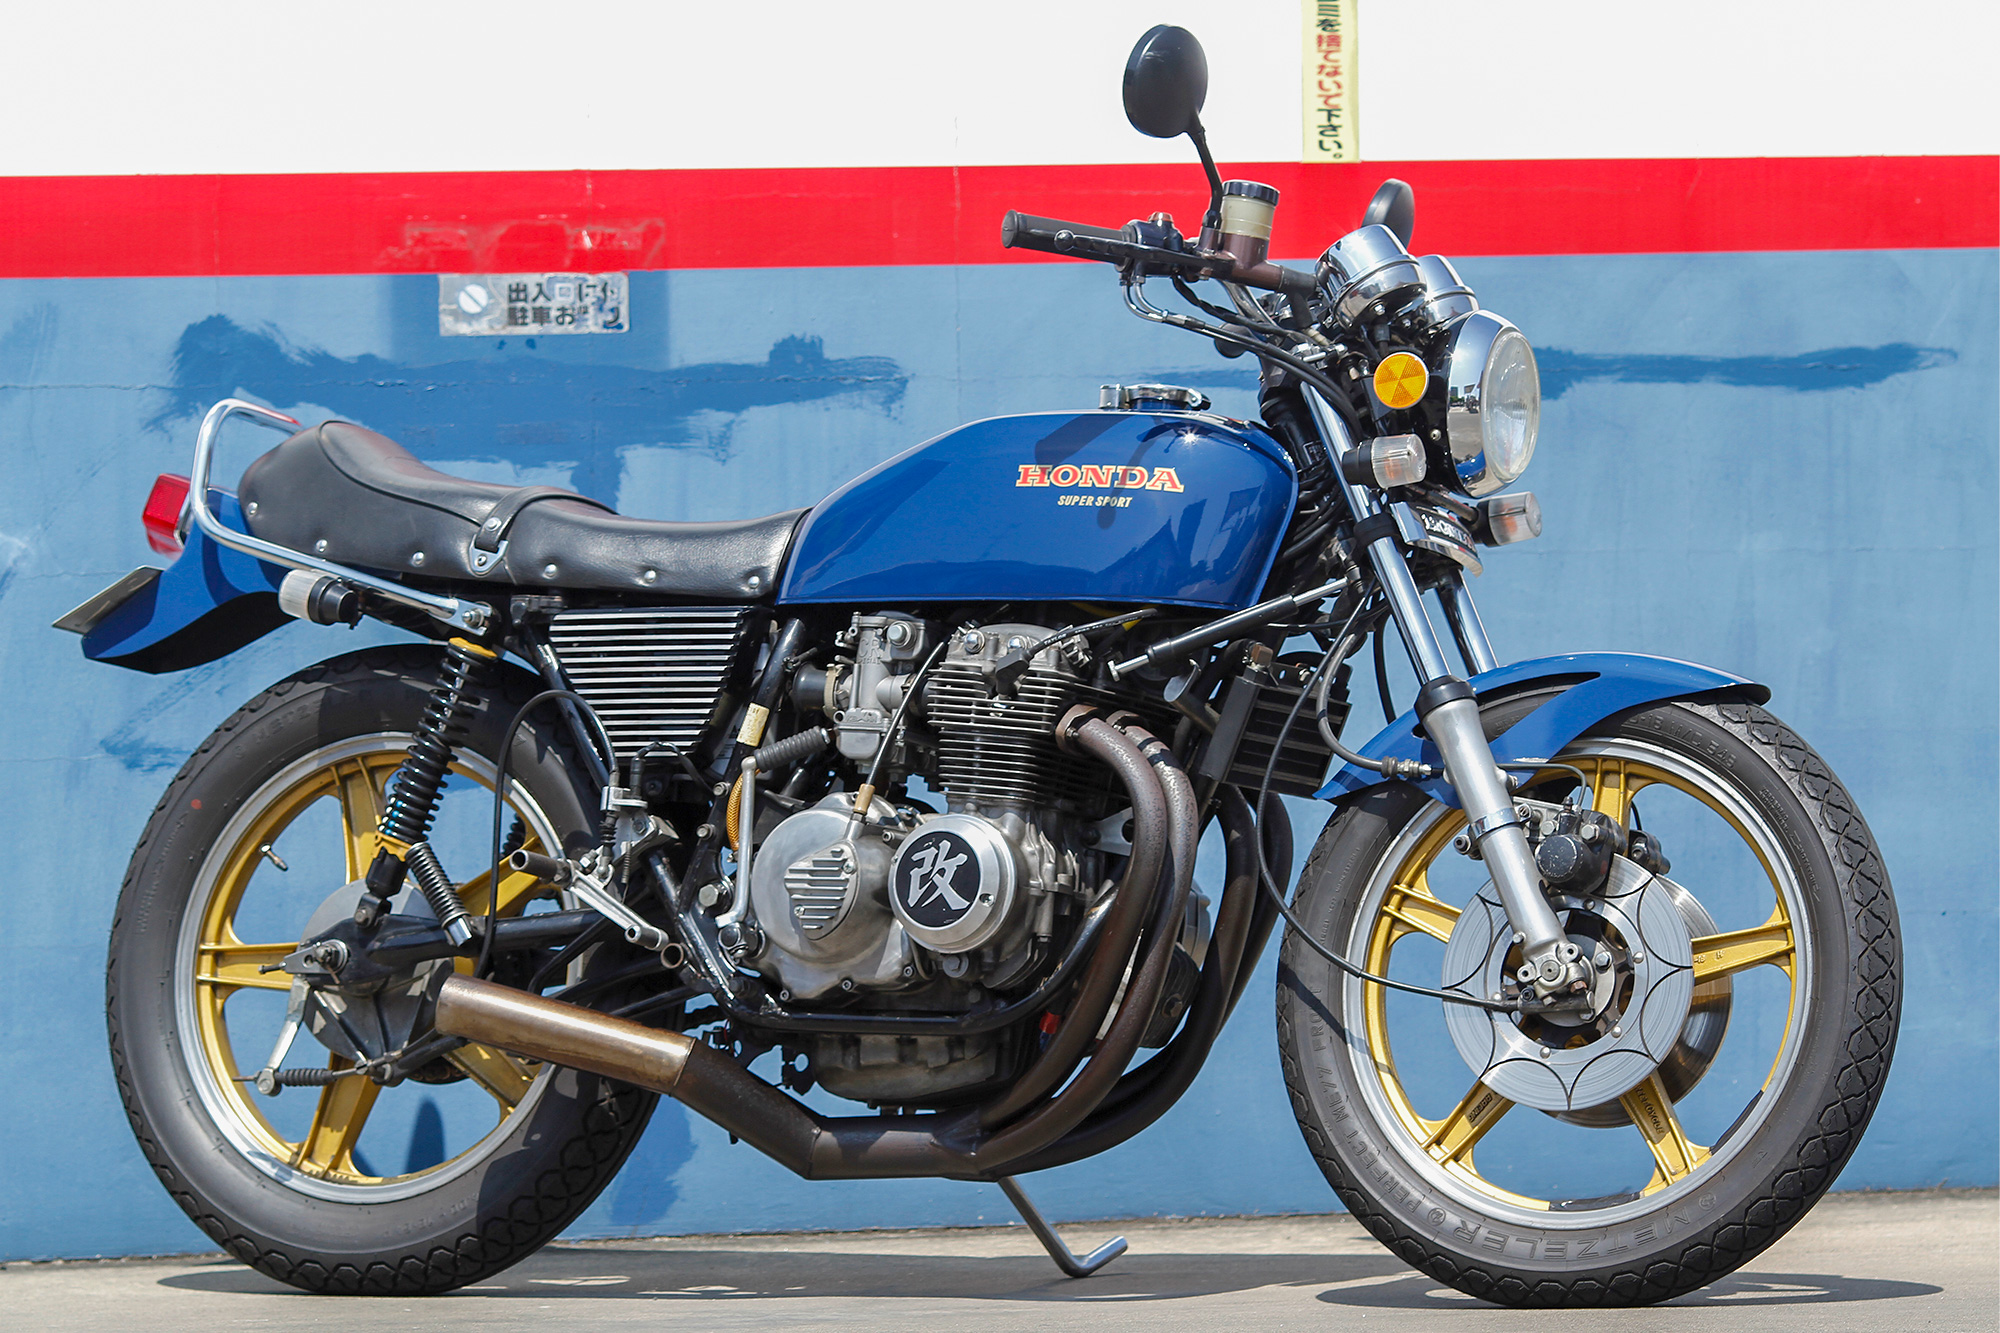 CB400FOUR by 市根井優憲(東京都)